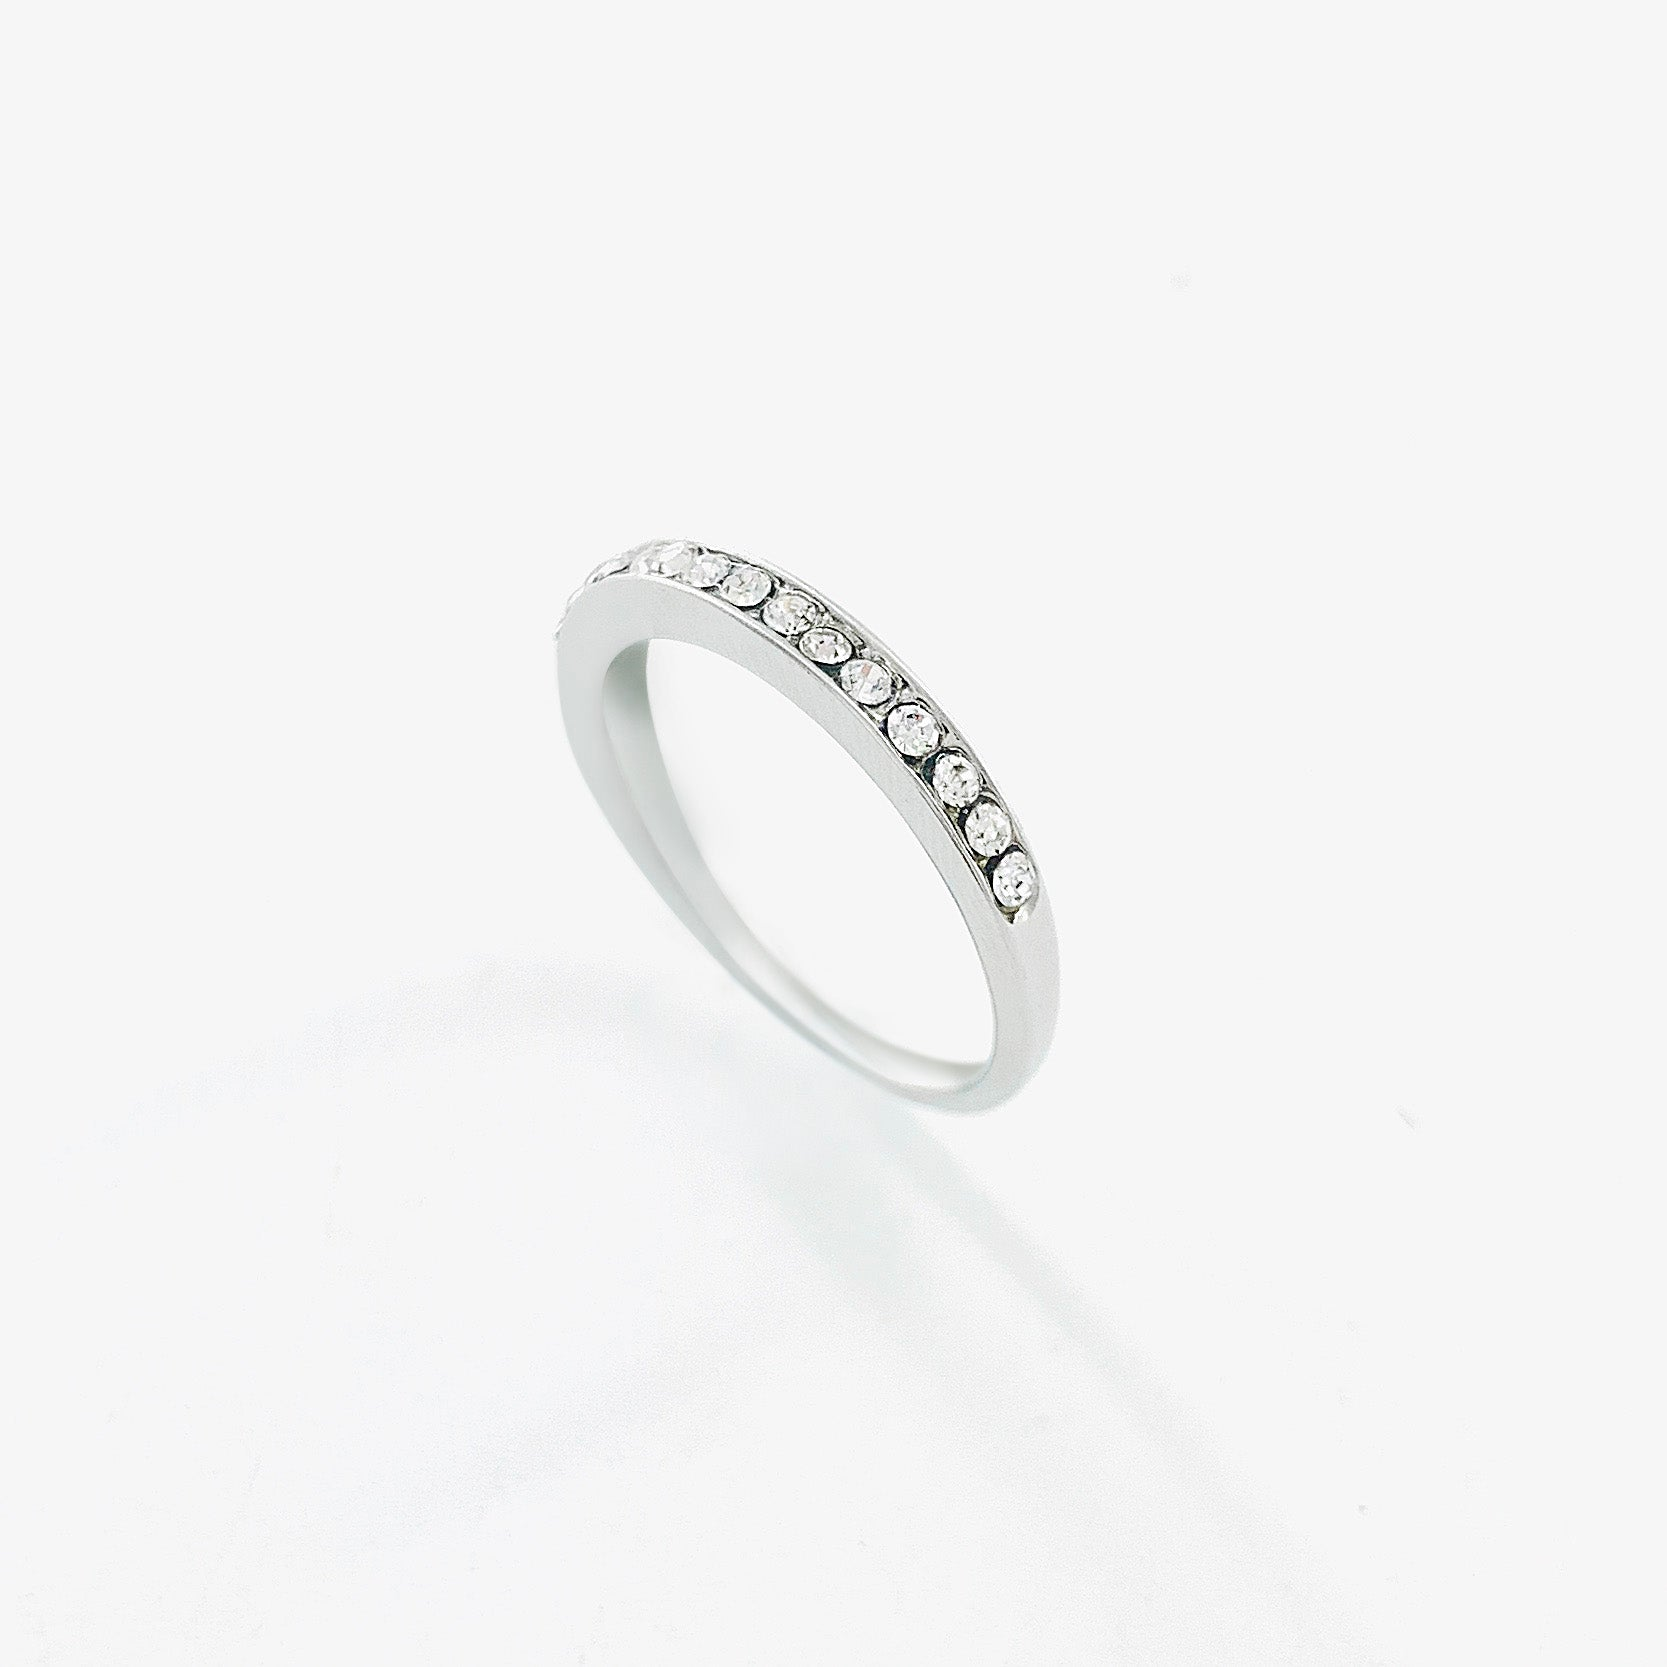 Thin Silver band with row of diamante stones